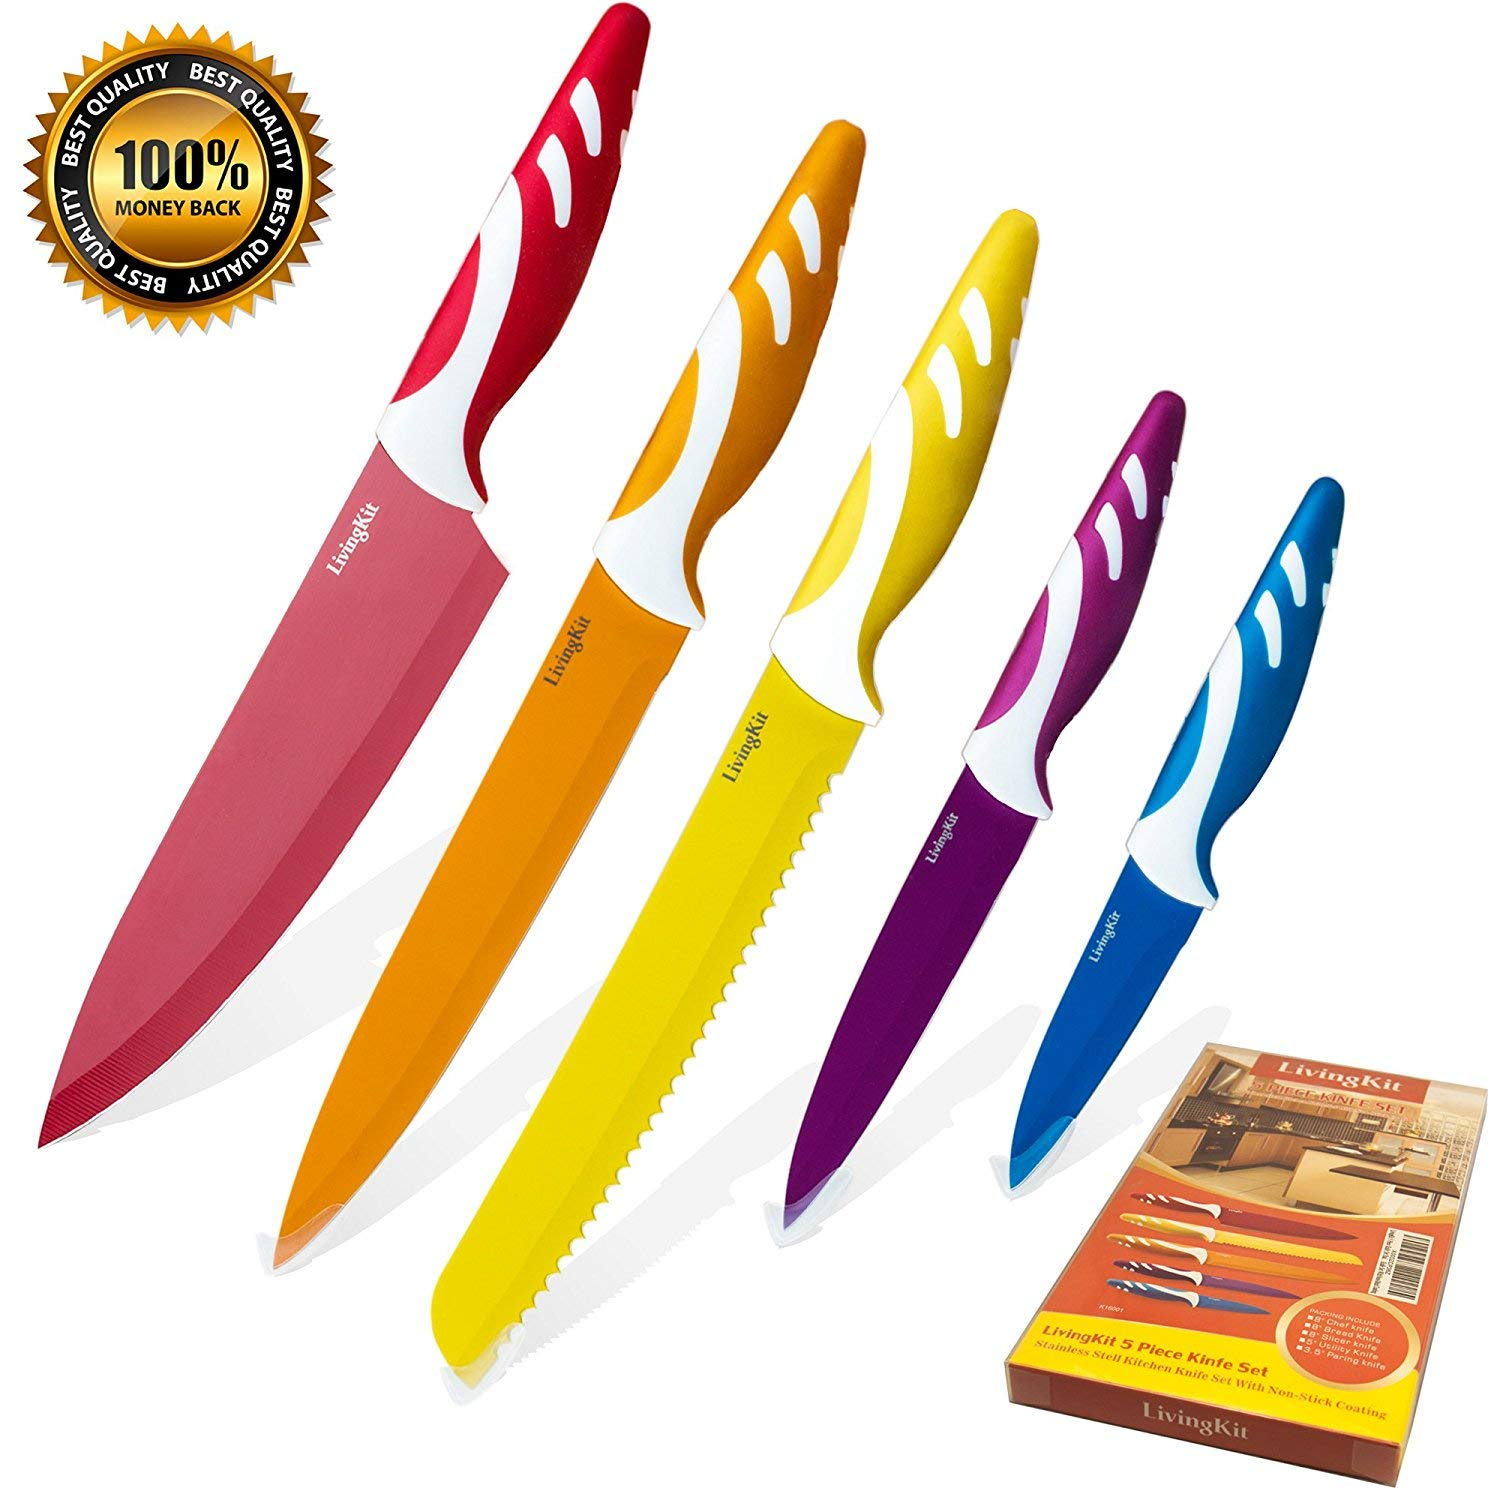 LivingKit Chef Knife Set 5 Pieces Stainless Steel Blades NonStick Coating Chef Slicer Bread Utility and Paring Knife for Housewarming Commercial Home Kitchen